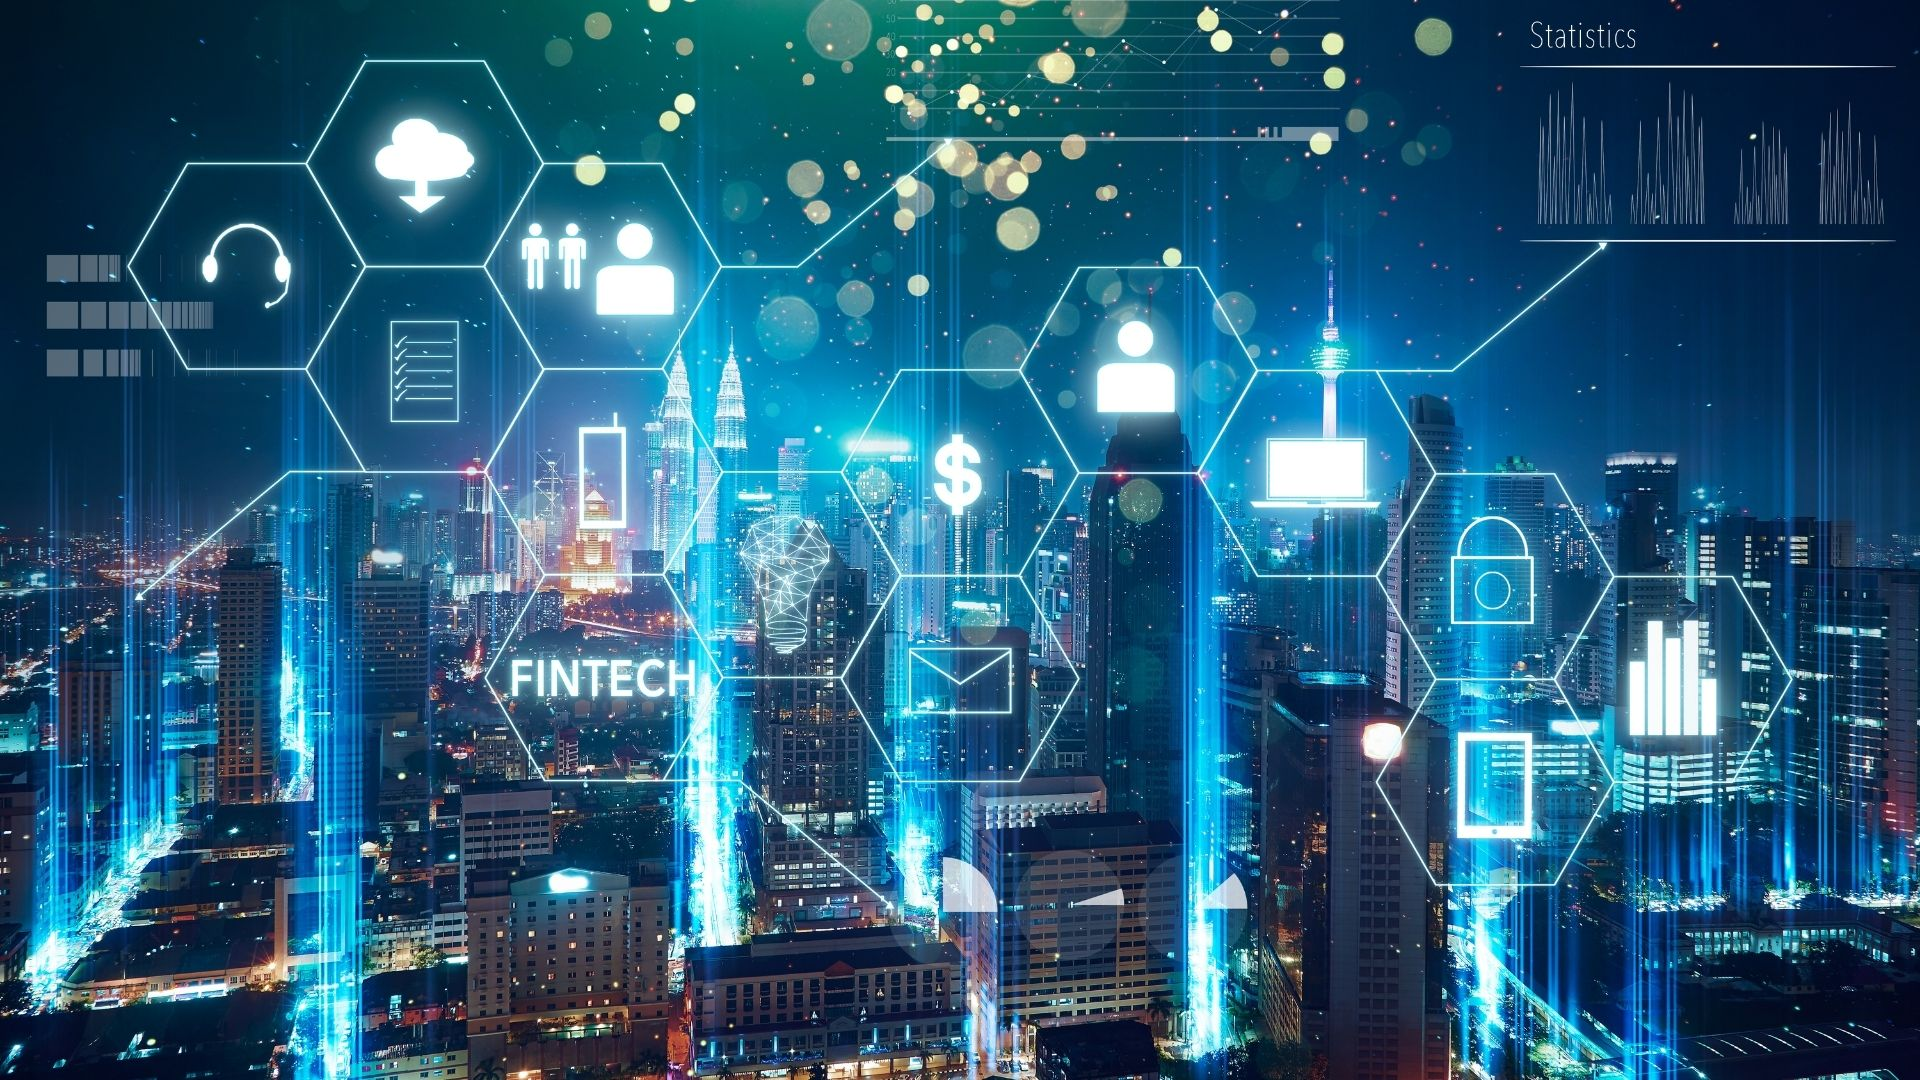 Will there be a post-Brexit fintech boom? 33